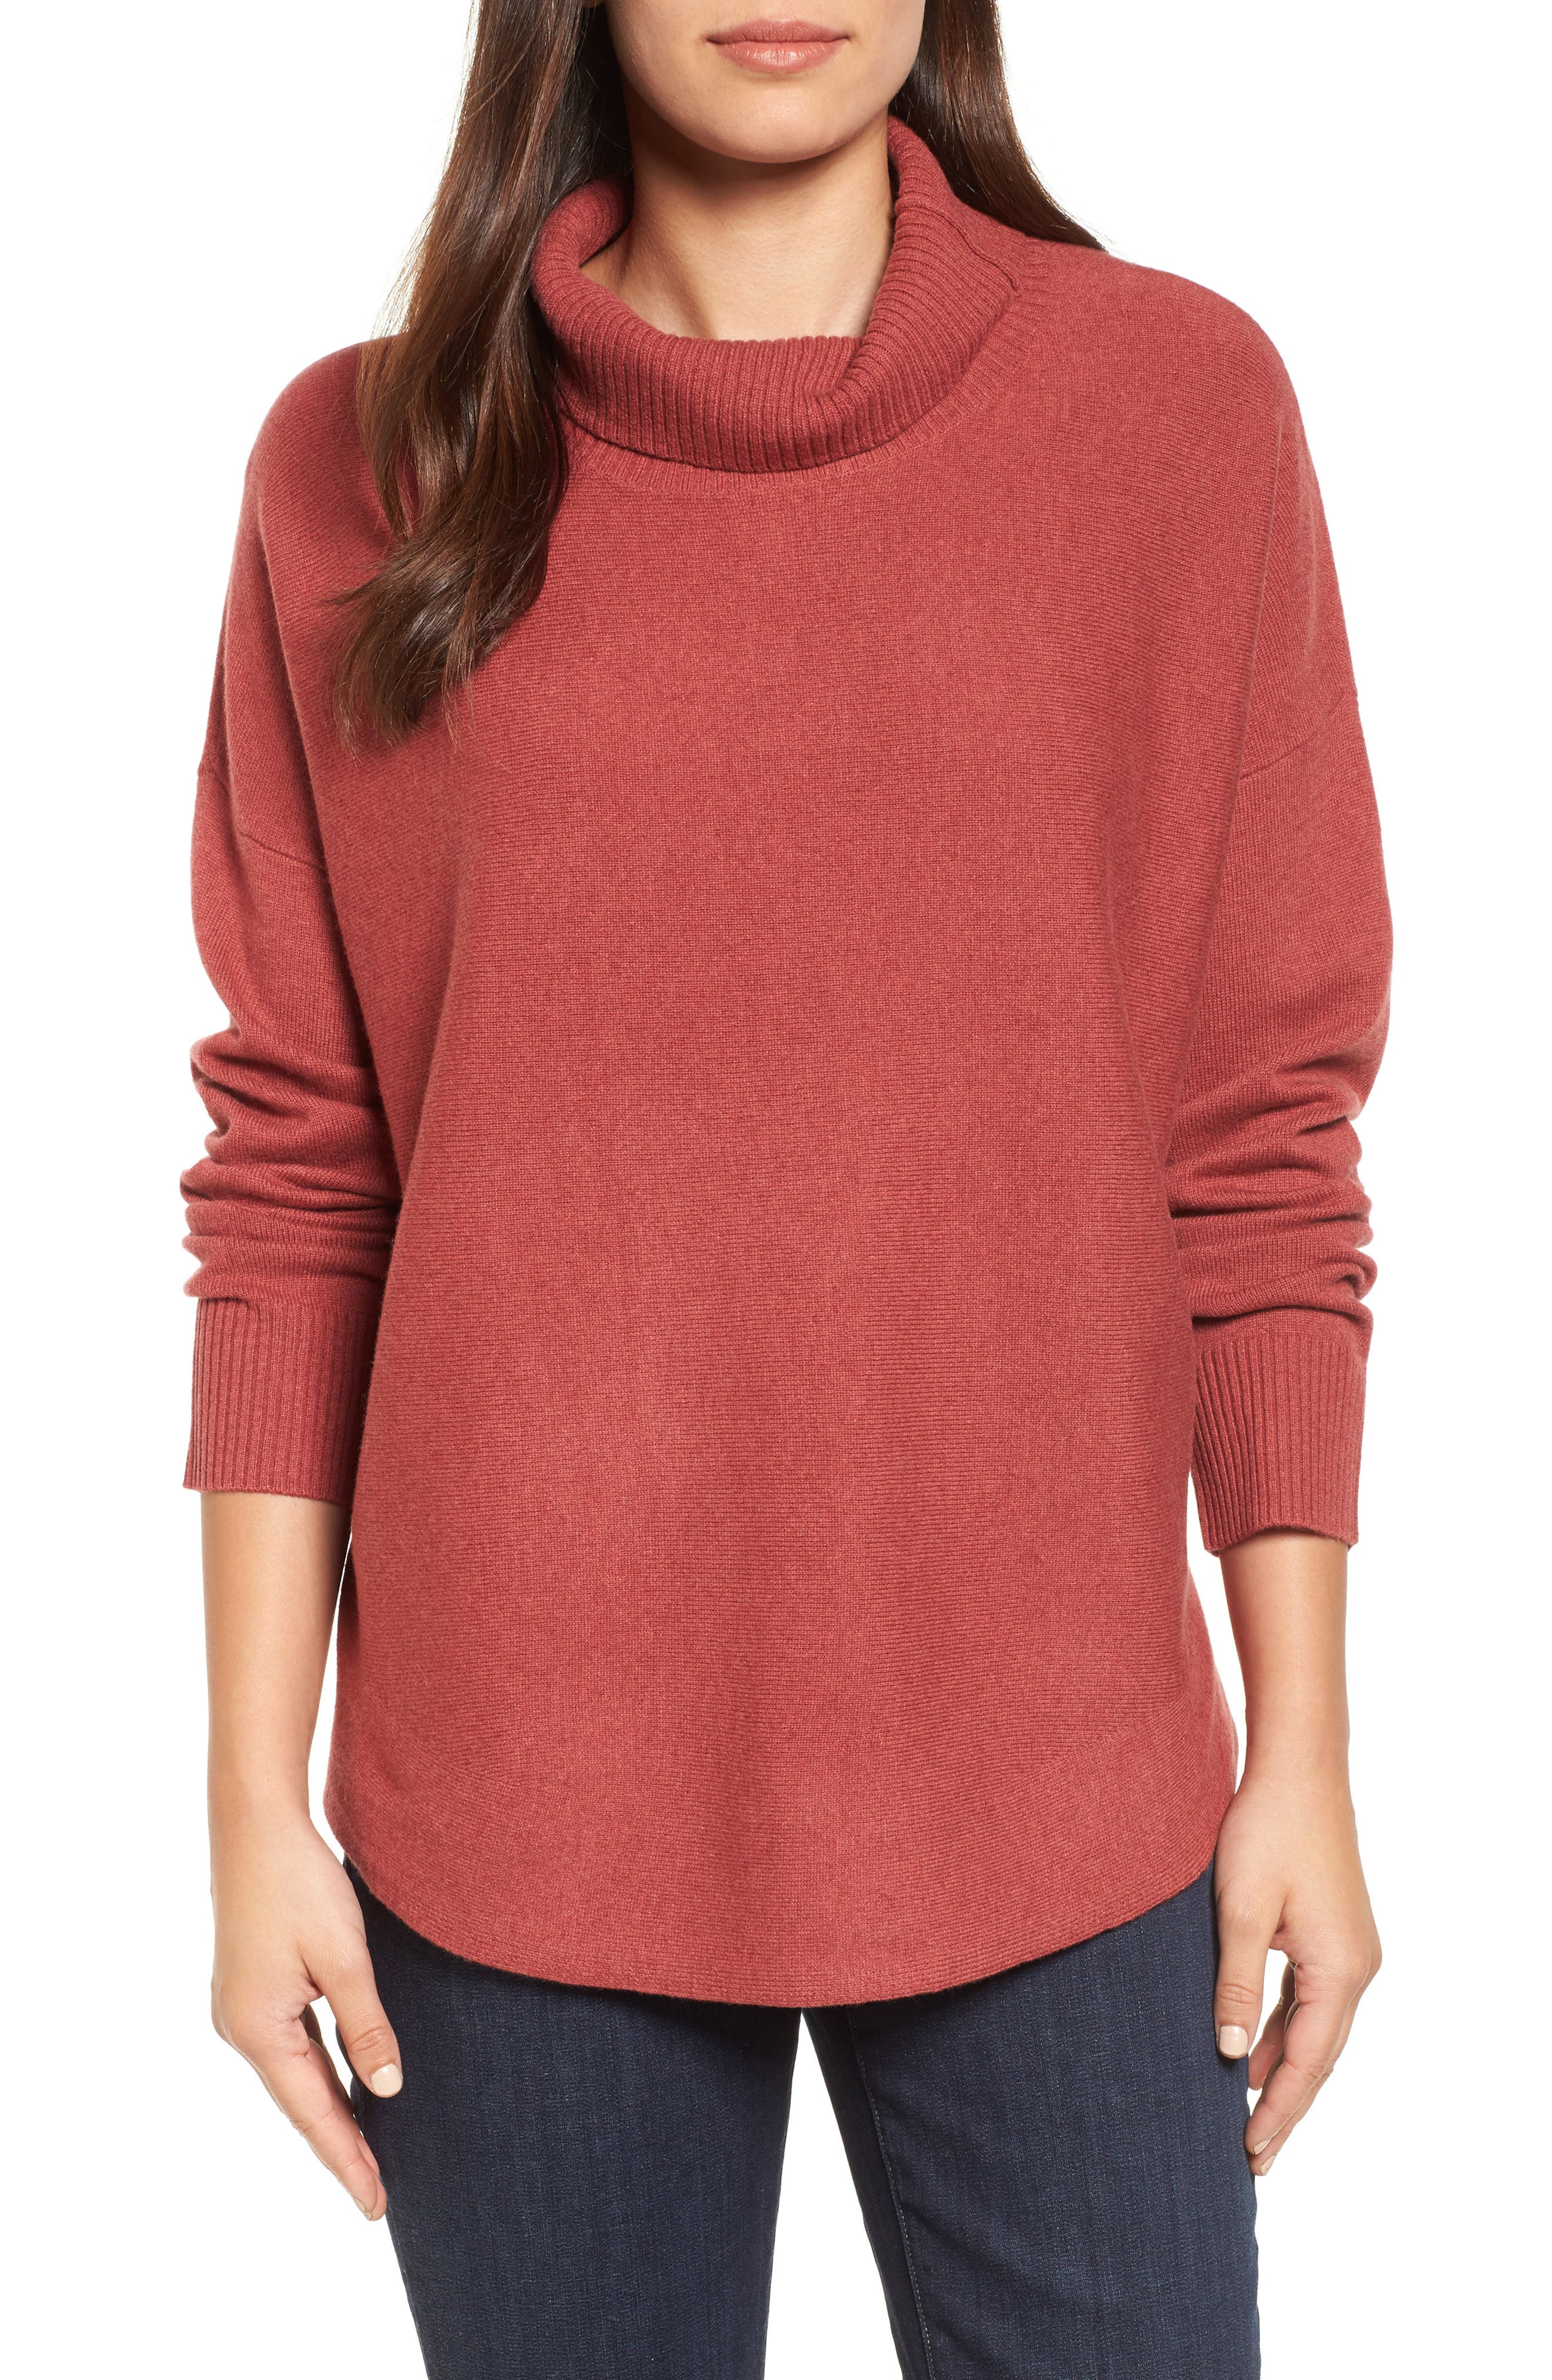 Eileen Fisher Women's Pink Clothing | Nordstrom